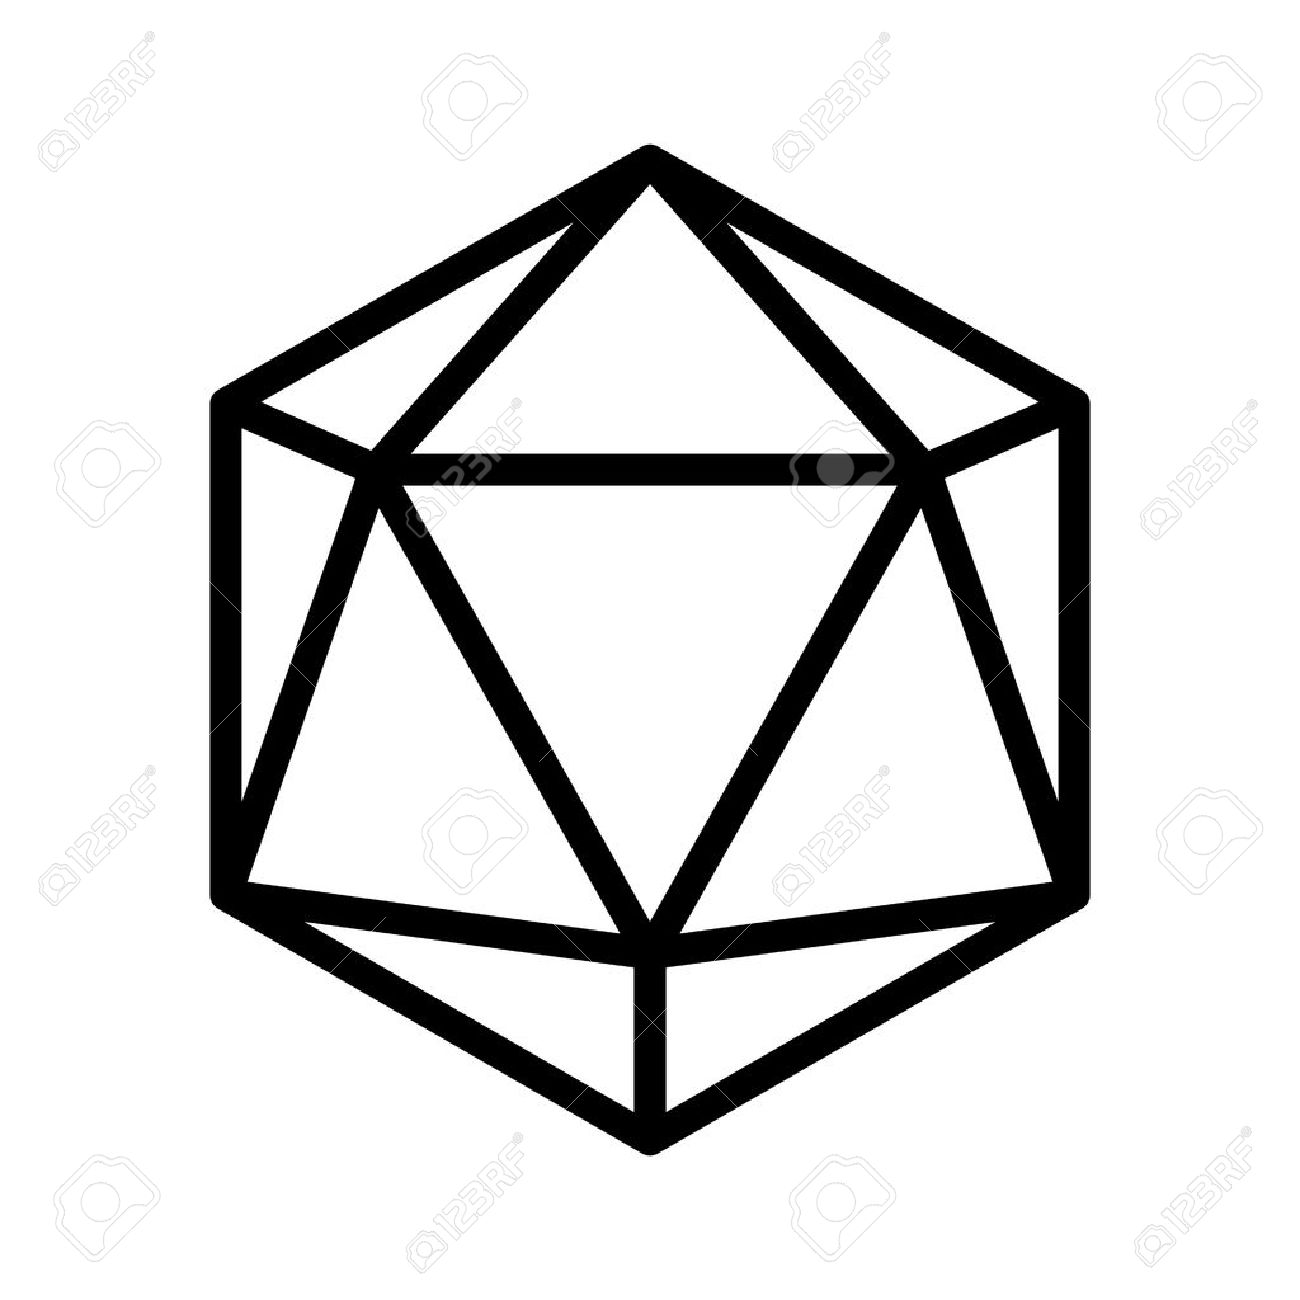 D drawing at getdrawings. D20 clipart clipart black and white download